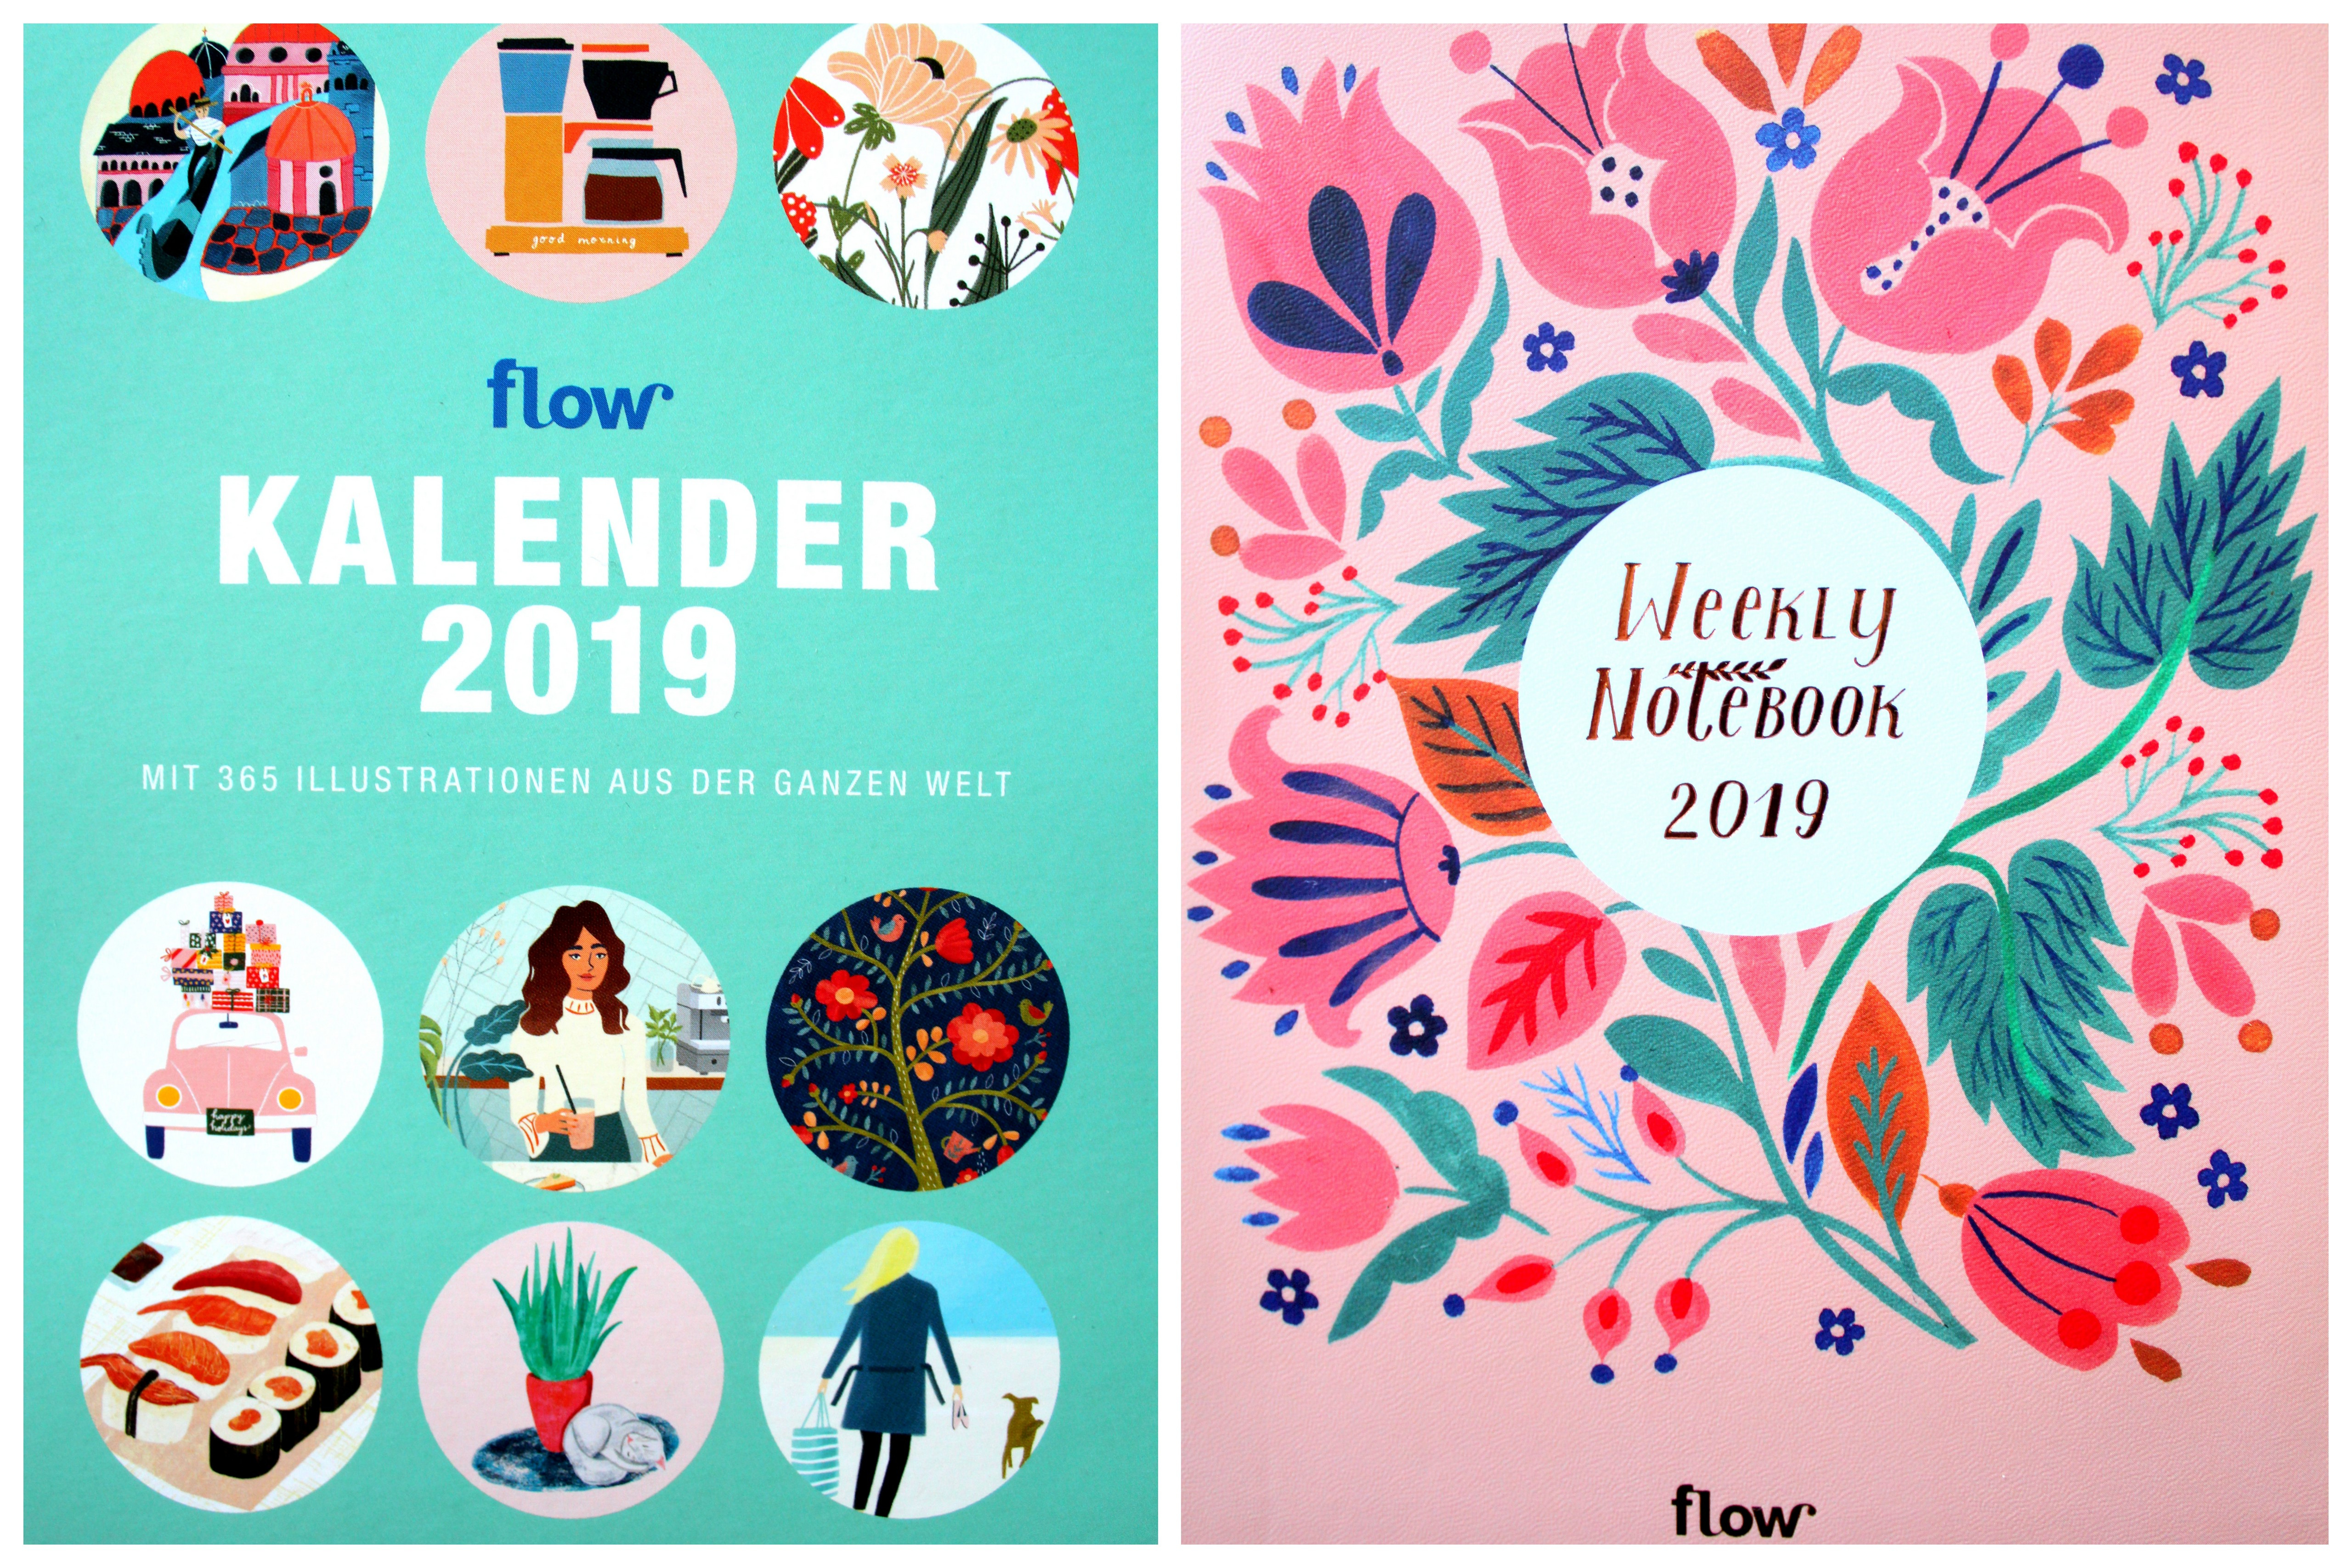 Flow diary and calender